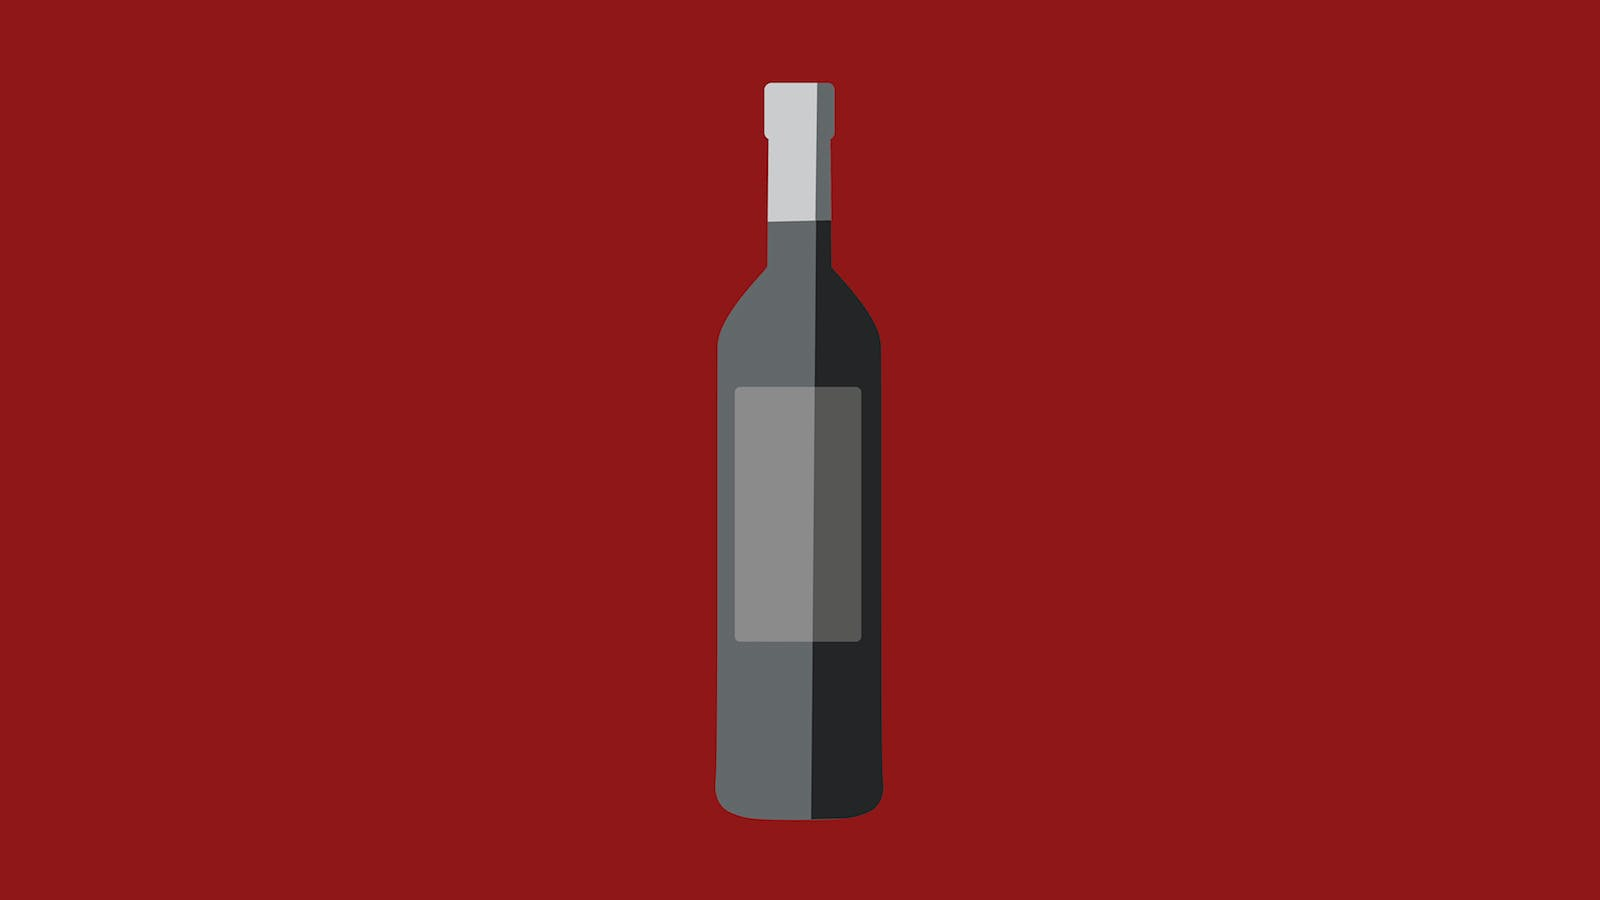 Health Q&A: Why isn't there a nutrition label on wine bottles?